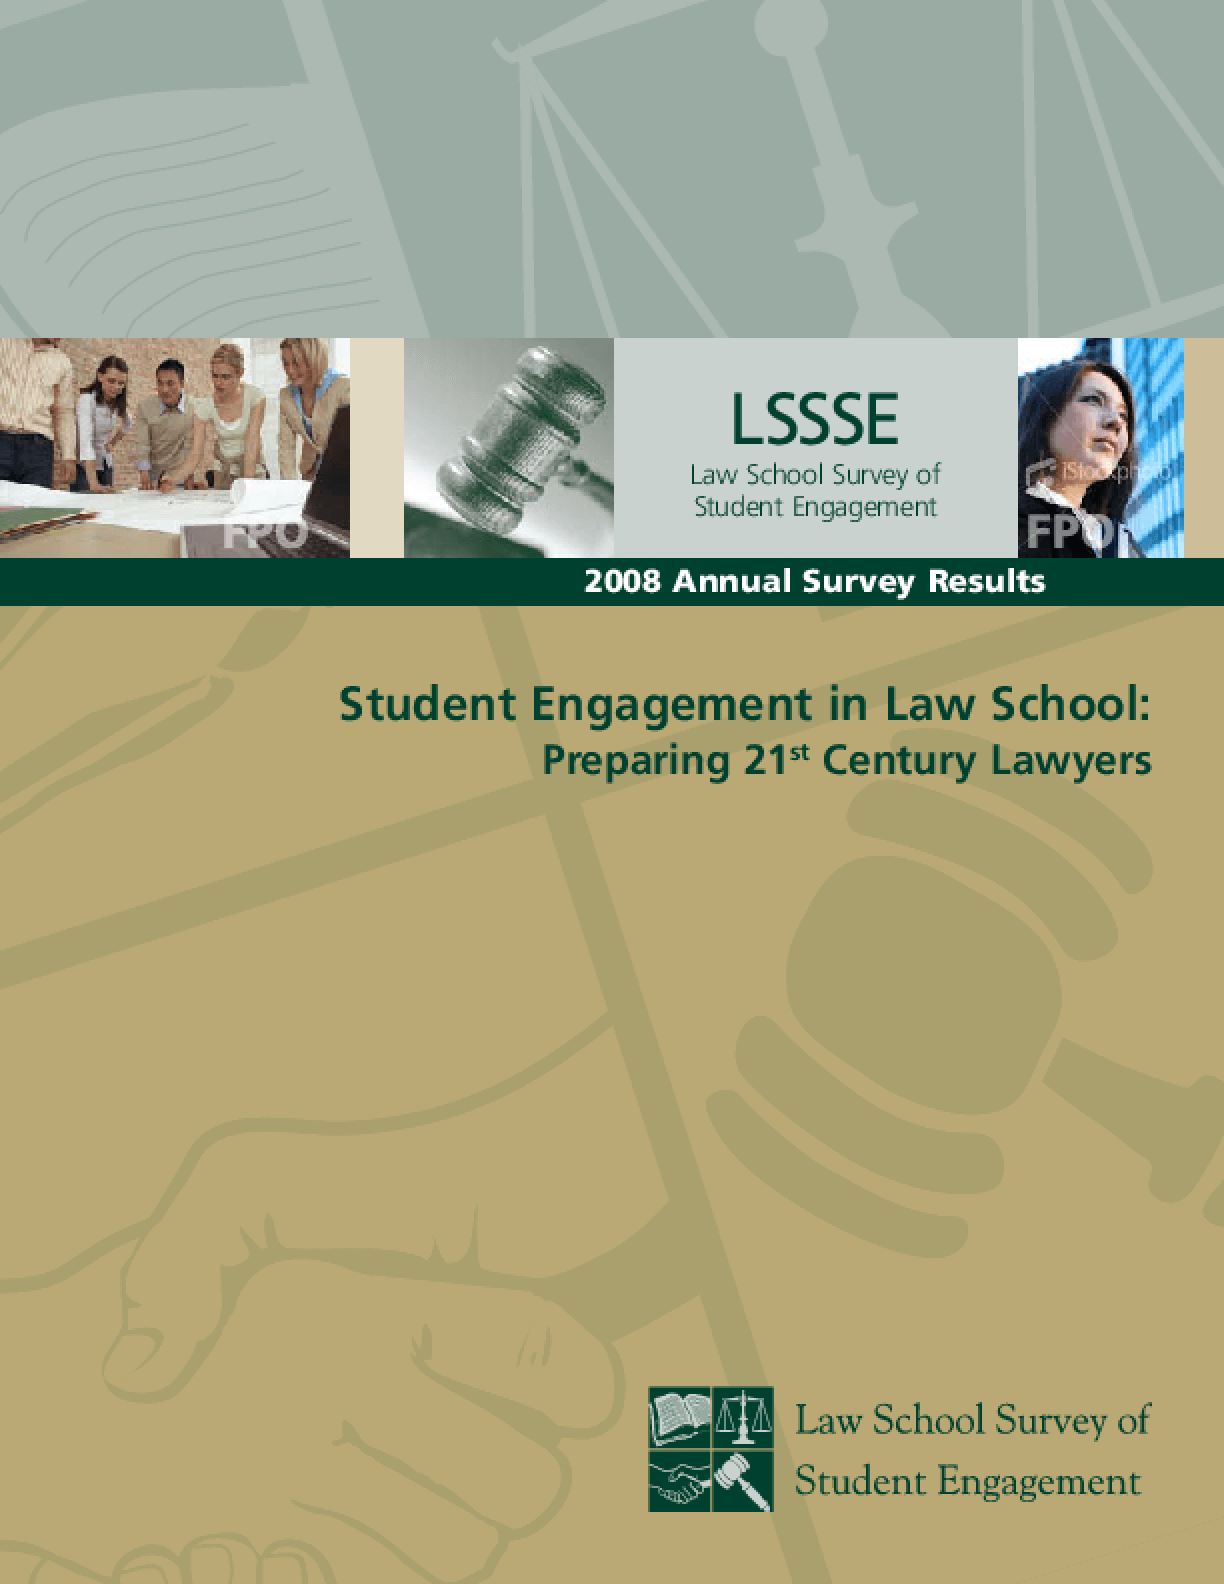 Student Engagement in Law School: Preparing 21st Century Lawyers